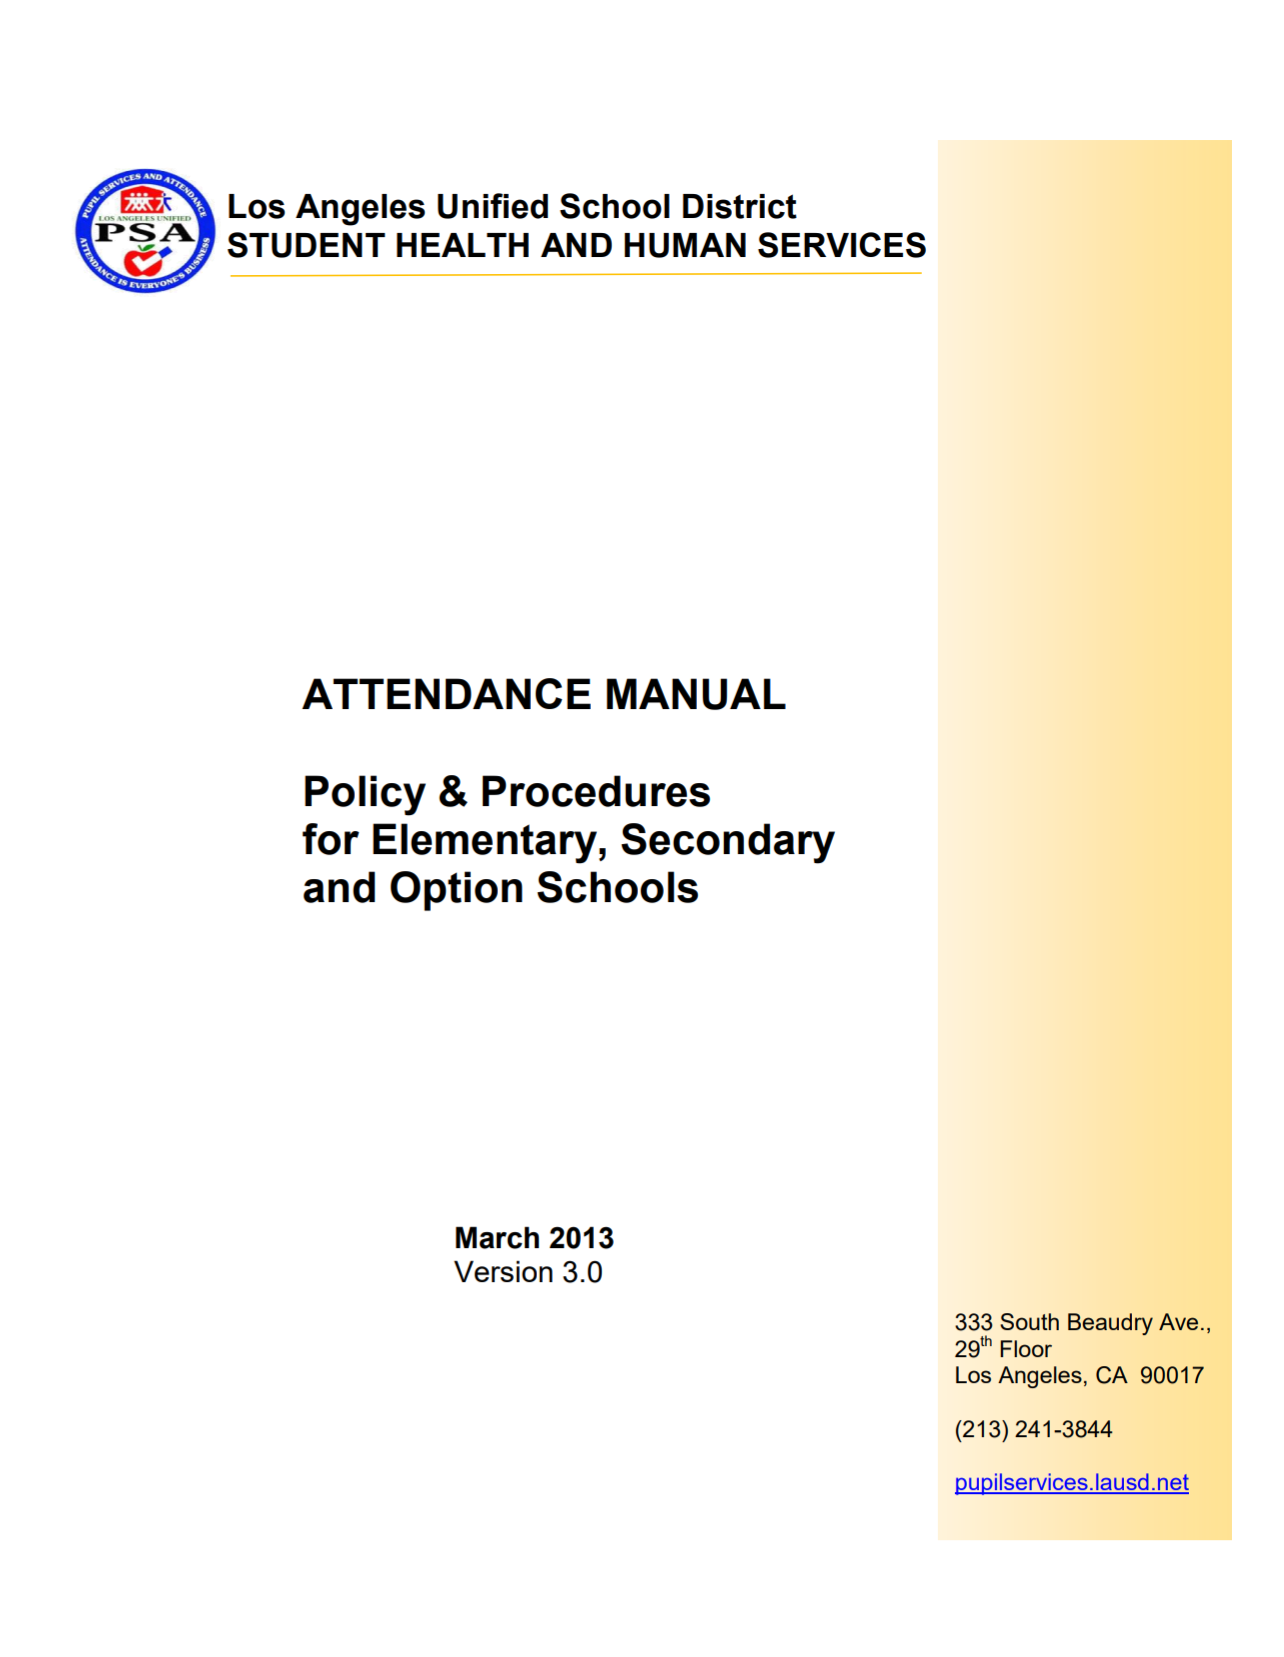 ATTENDANCE MANUAL Policy & Procedures for Elementary, Secondary and Option  Schools